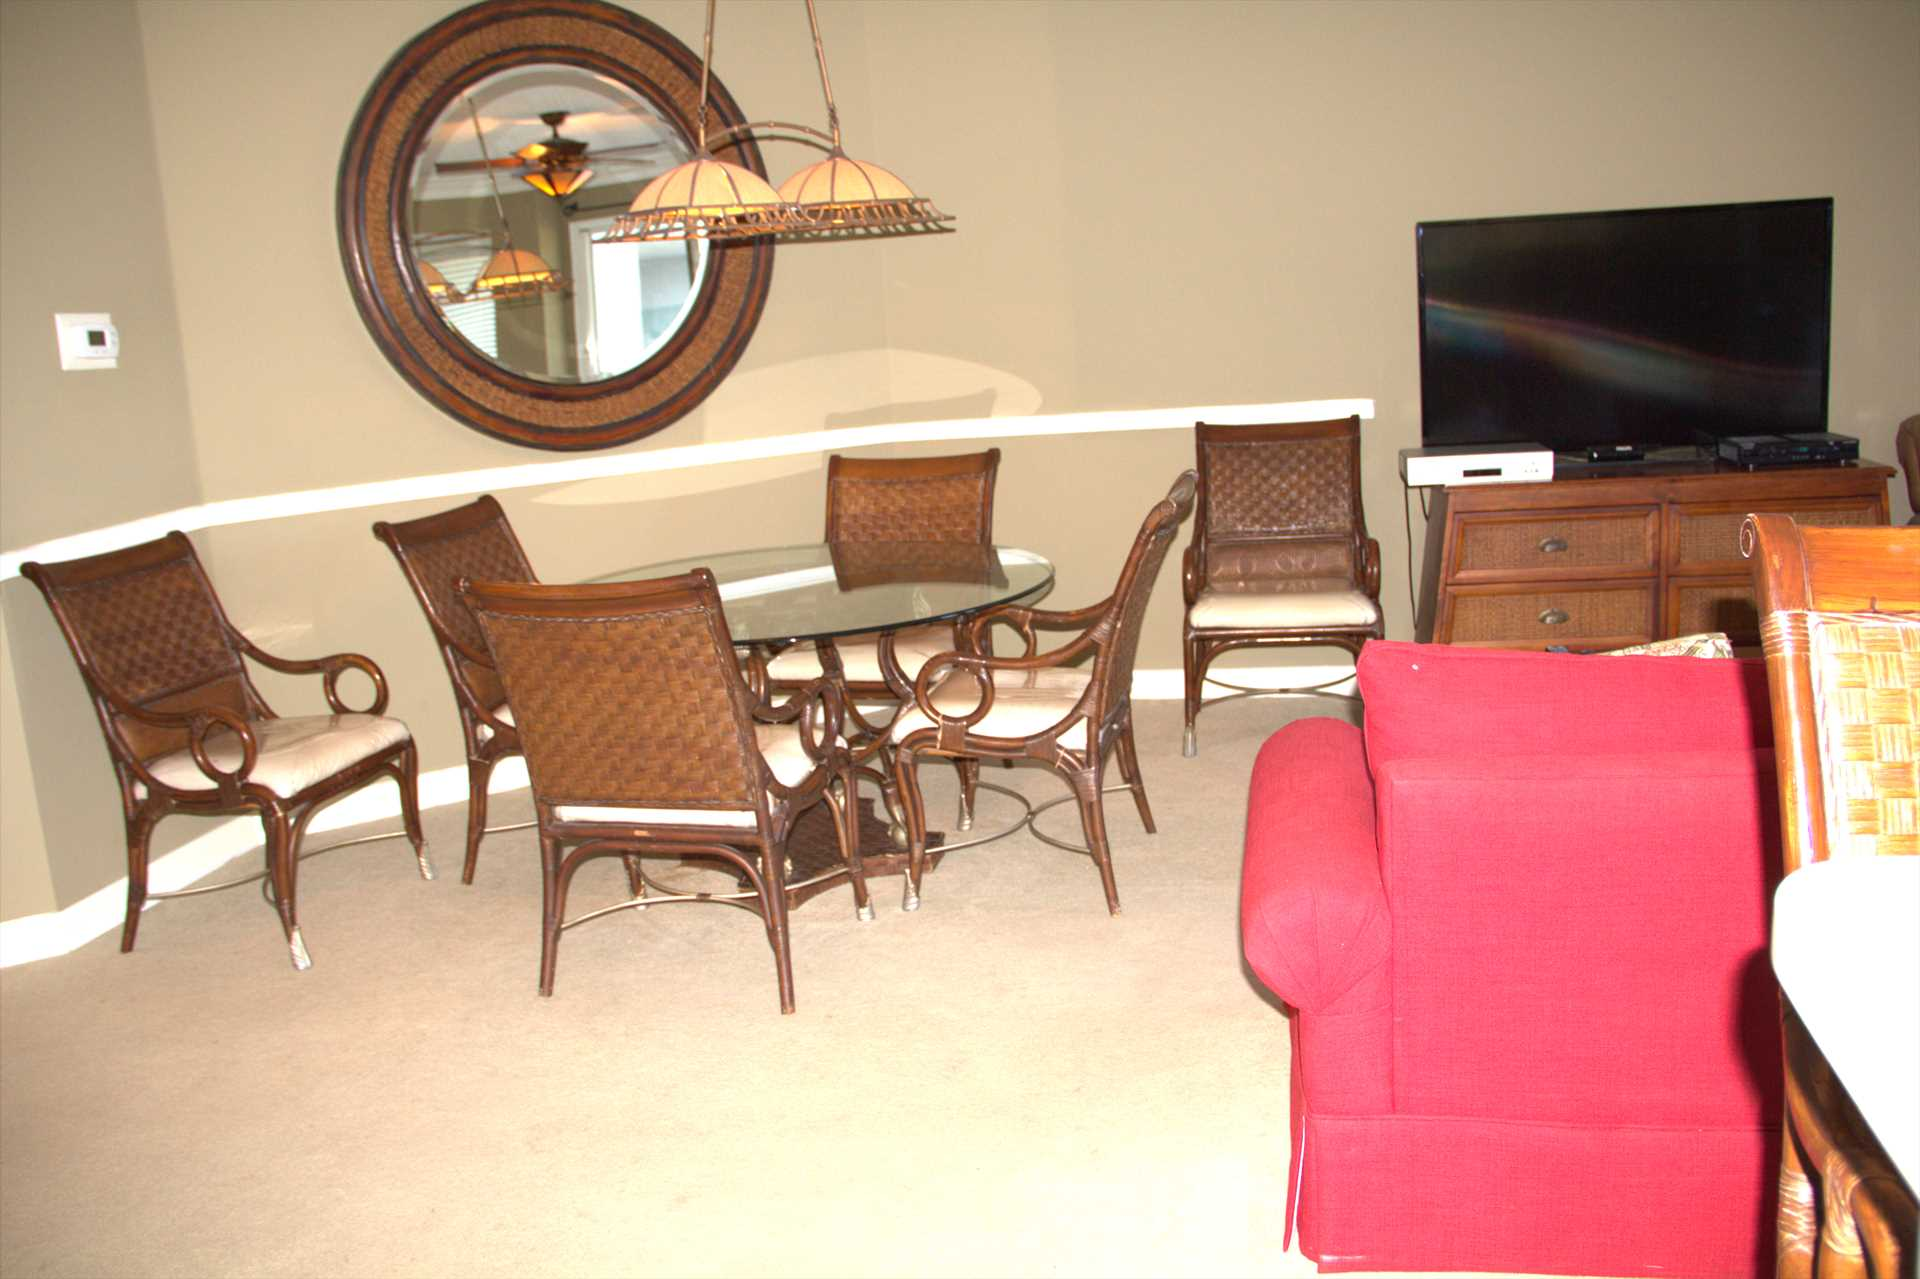 The dining room table sits 6